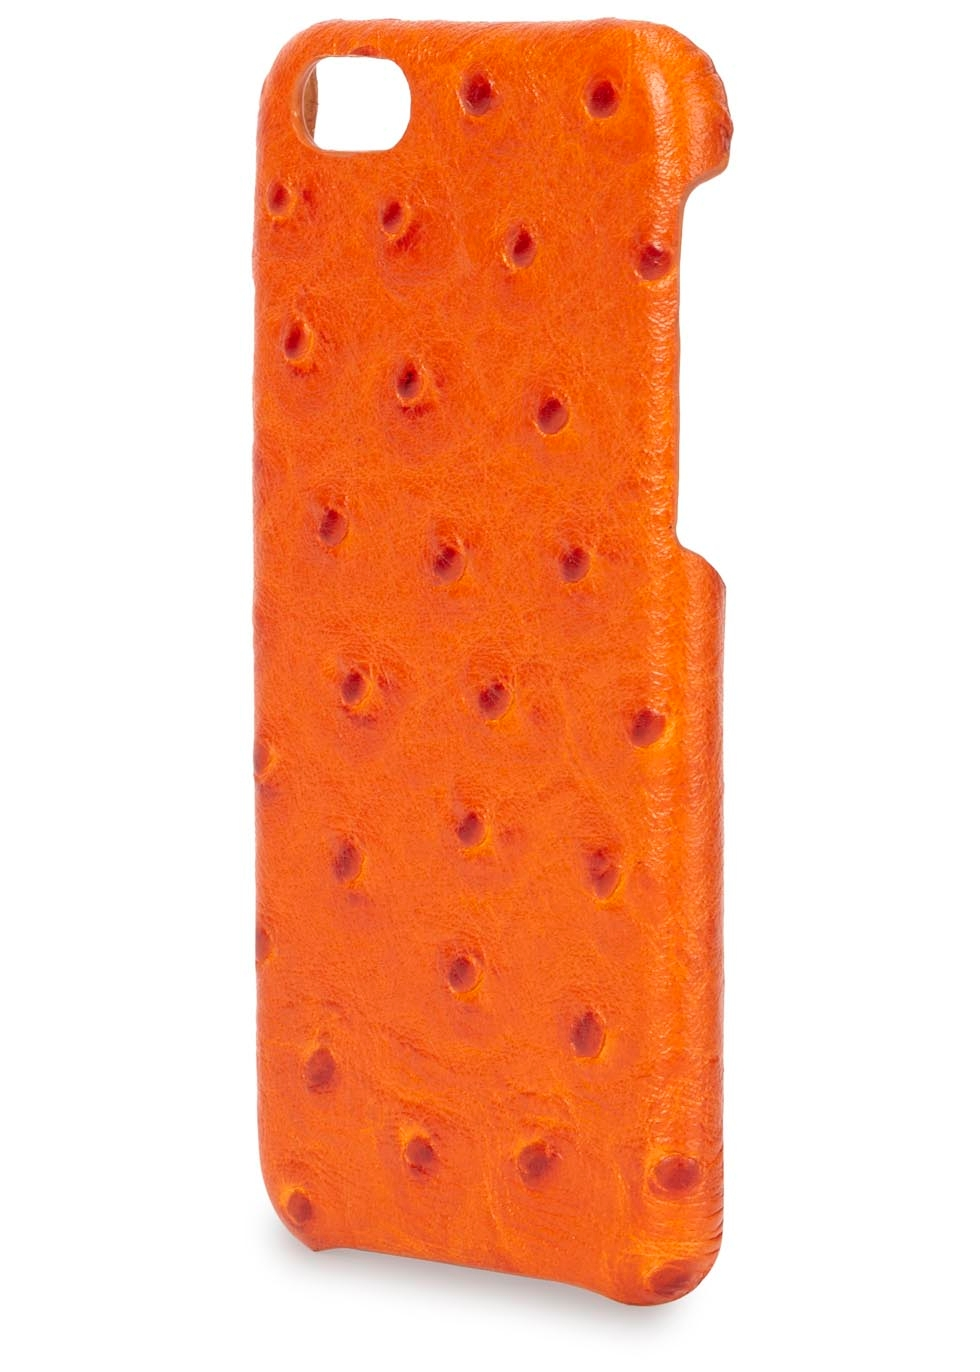 Orange ostrich effect leather iPhone 6 case - The Case Factory